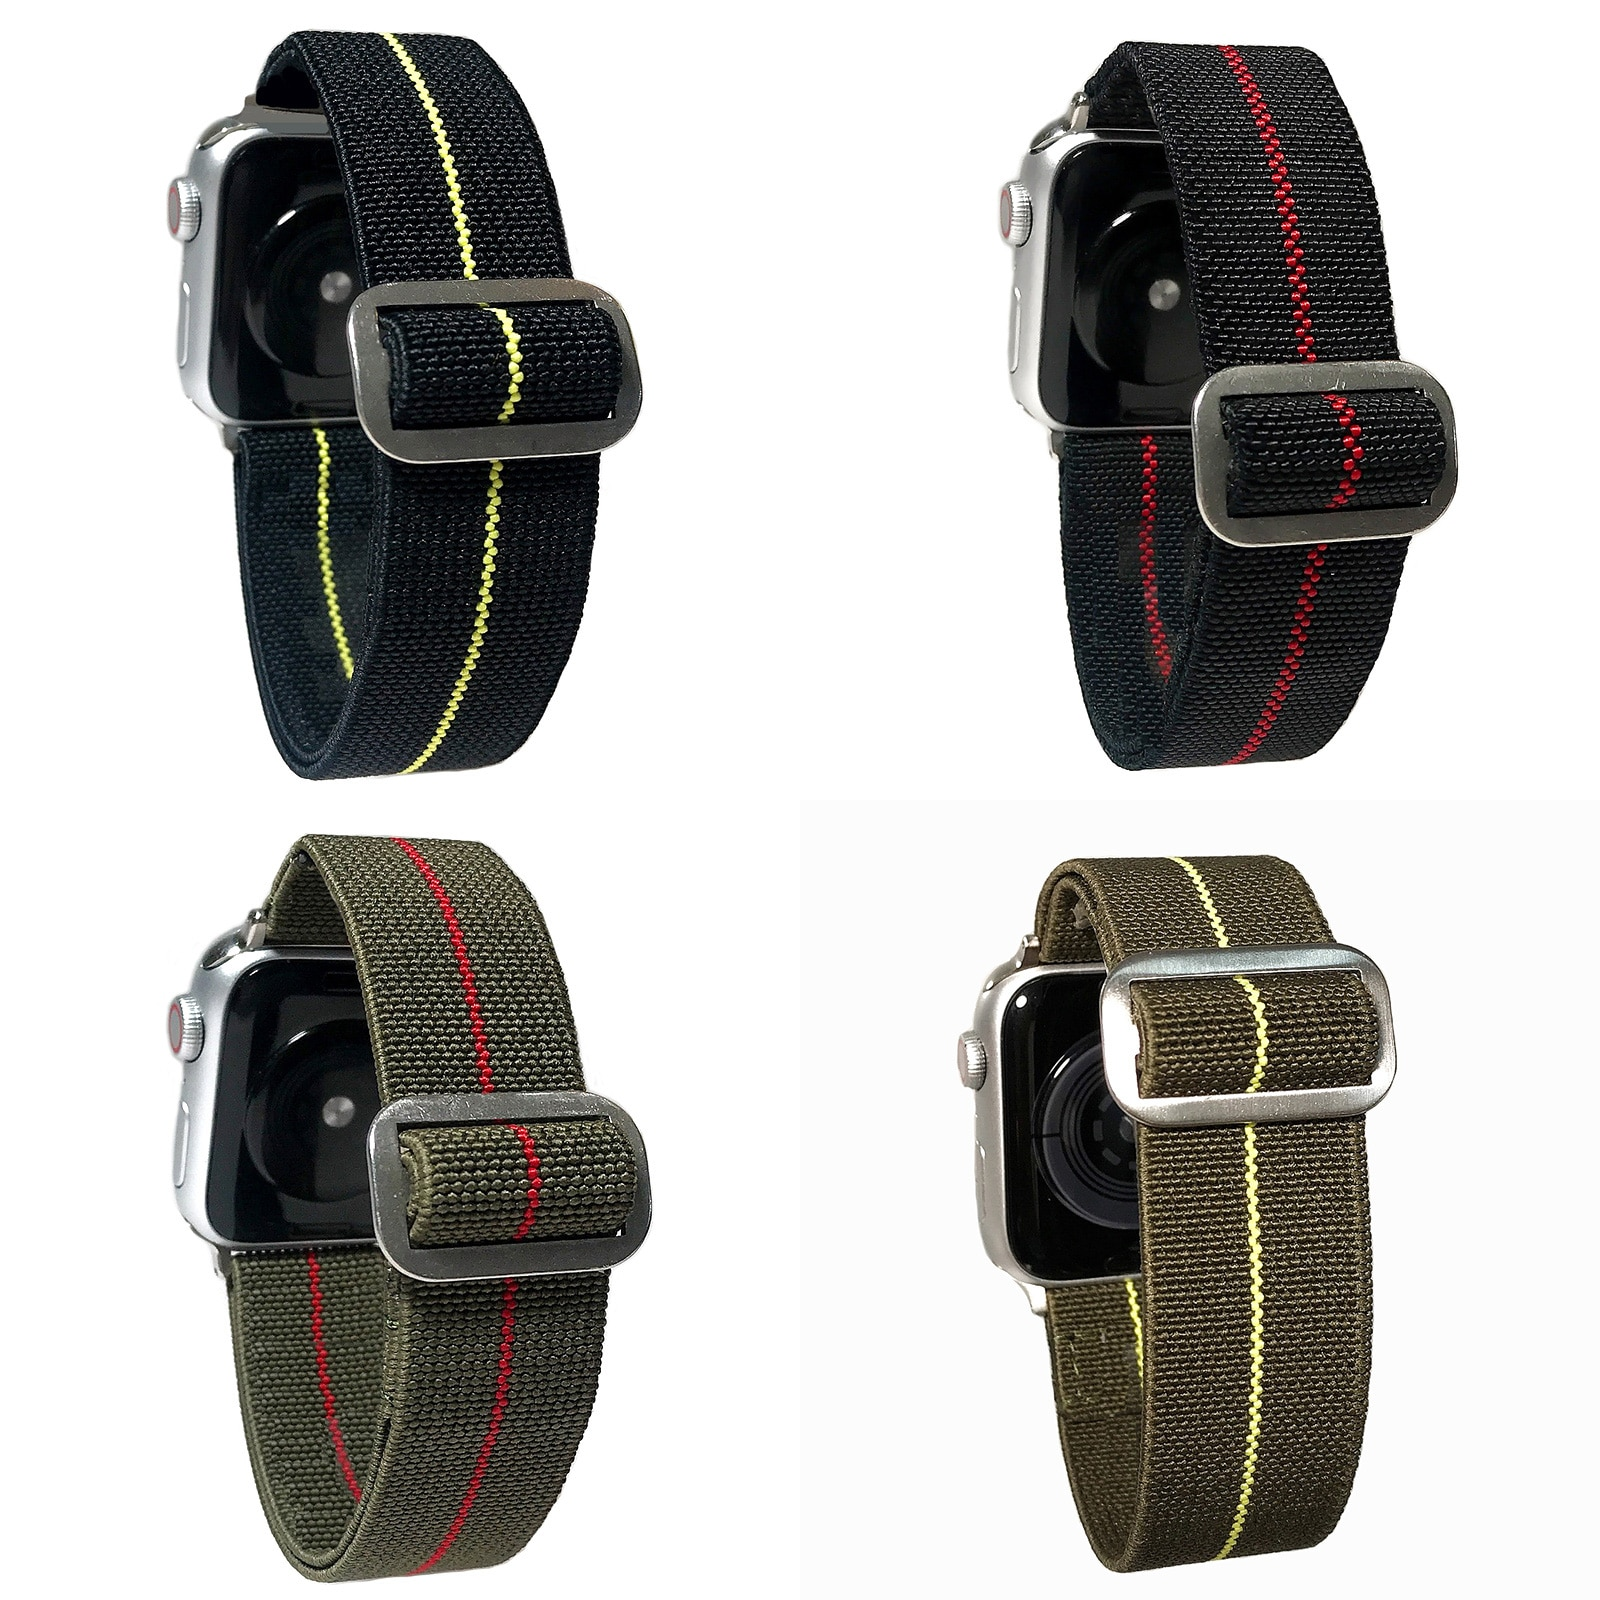 nylon braided solo loop for apple watch band 6 5 3 bands 44mm 40mm 38mm 42mm elastic strap bracelet for iwatch series 6 5 4 2 1 2020 Braided Solo Loop Nylon fabric Strap For Apple Watch band 44mm 40mm 38mm 42mm Elastic Bracelet for iWatch Series 6 SE 5 4 3